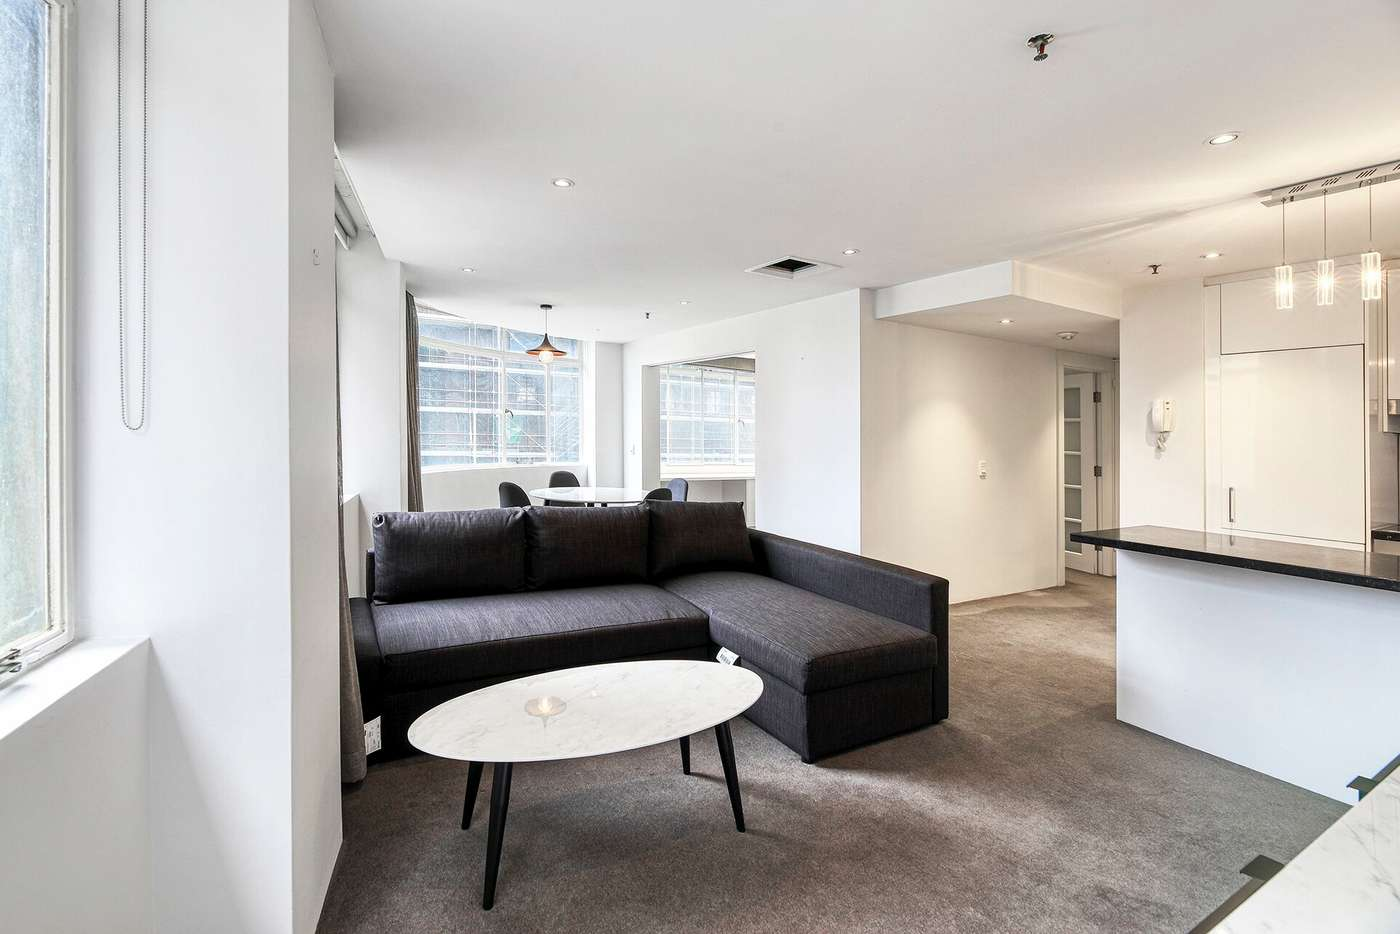 Main view of Homely apartment listing, 21/44 Bridge Street, Sydney NSW 2000